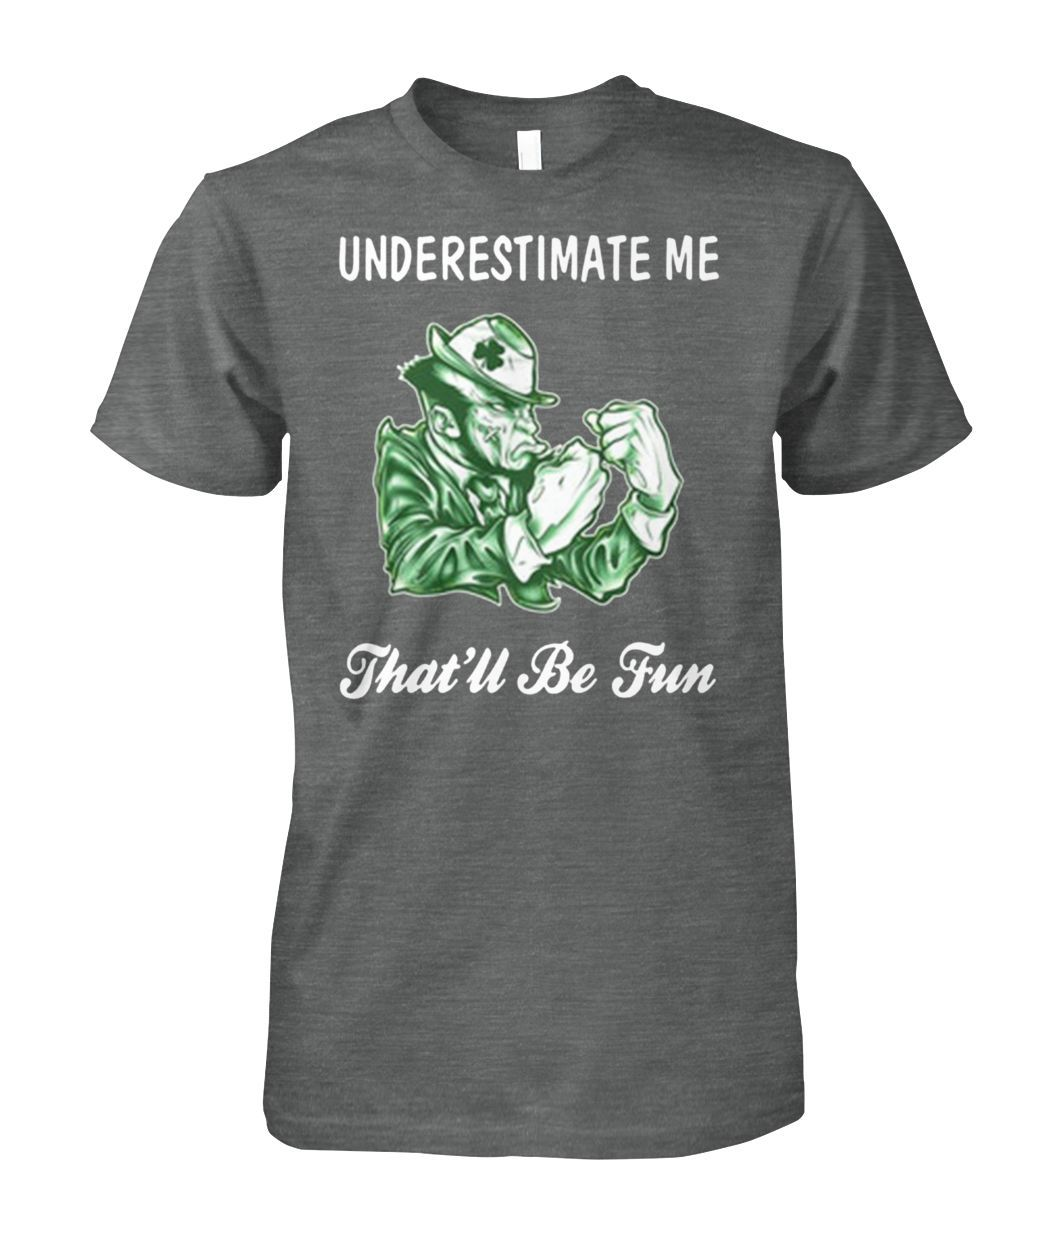 aebde6848 Malarkey chapter shenanigans underestimate me that'll be fun st patrick's  day shirt and badass